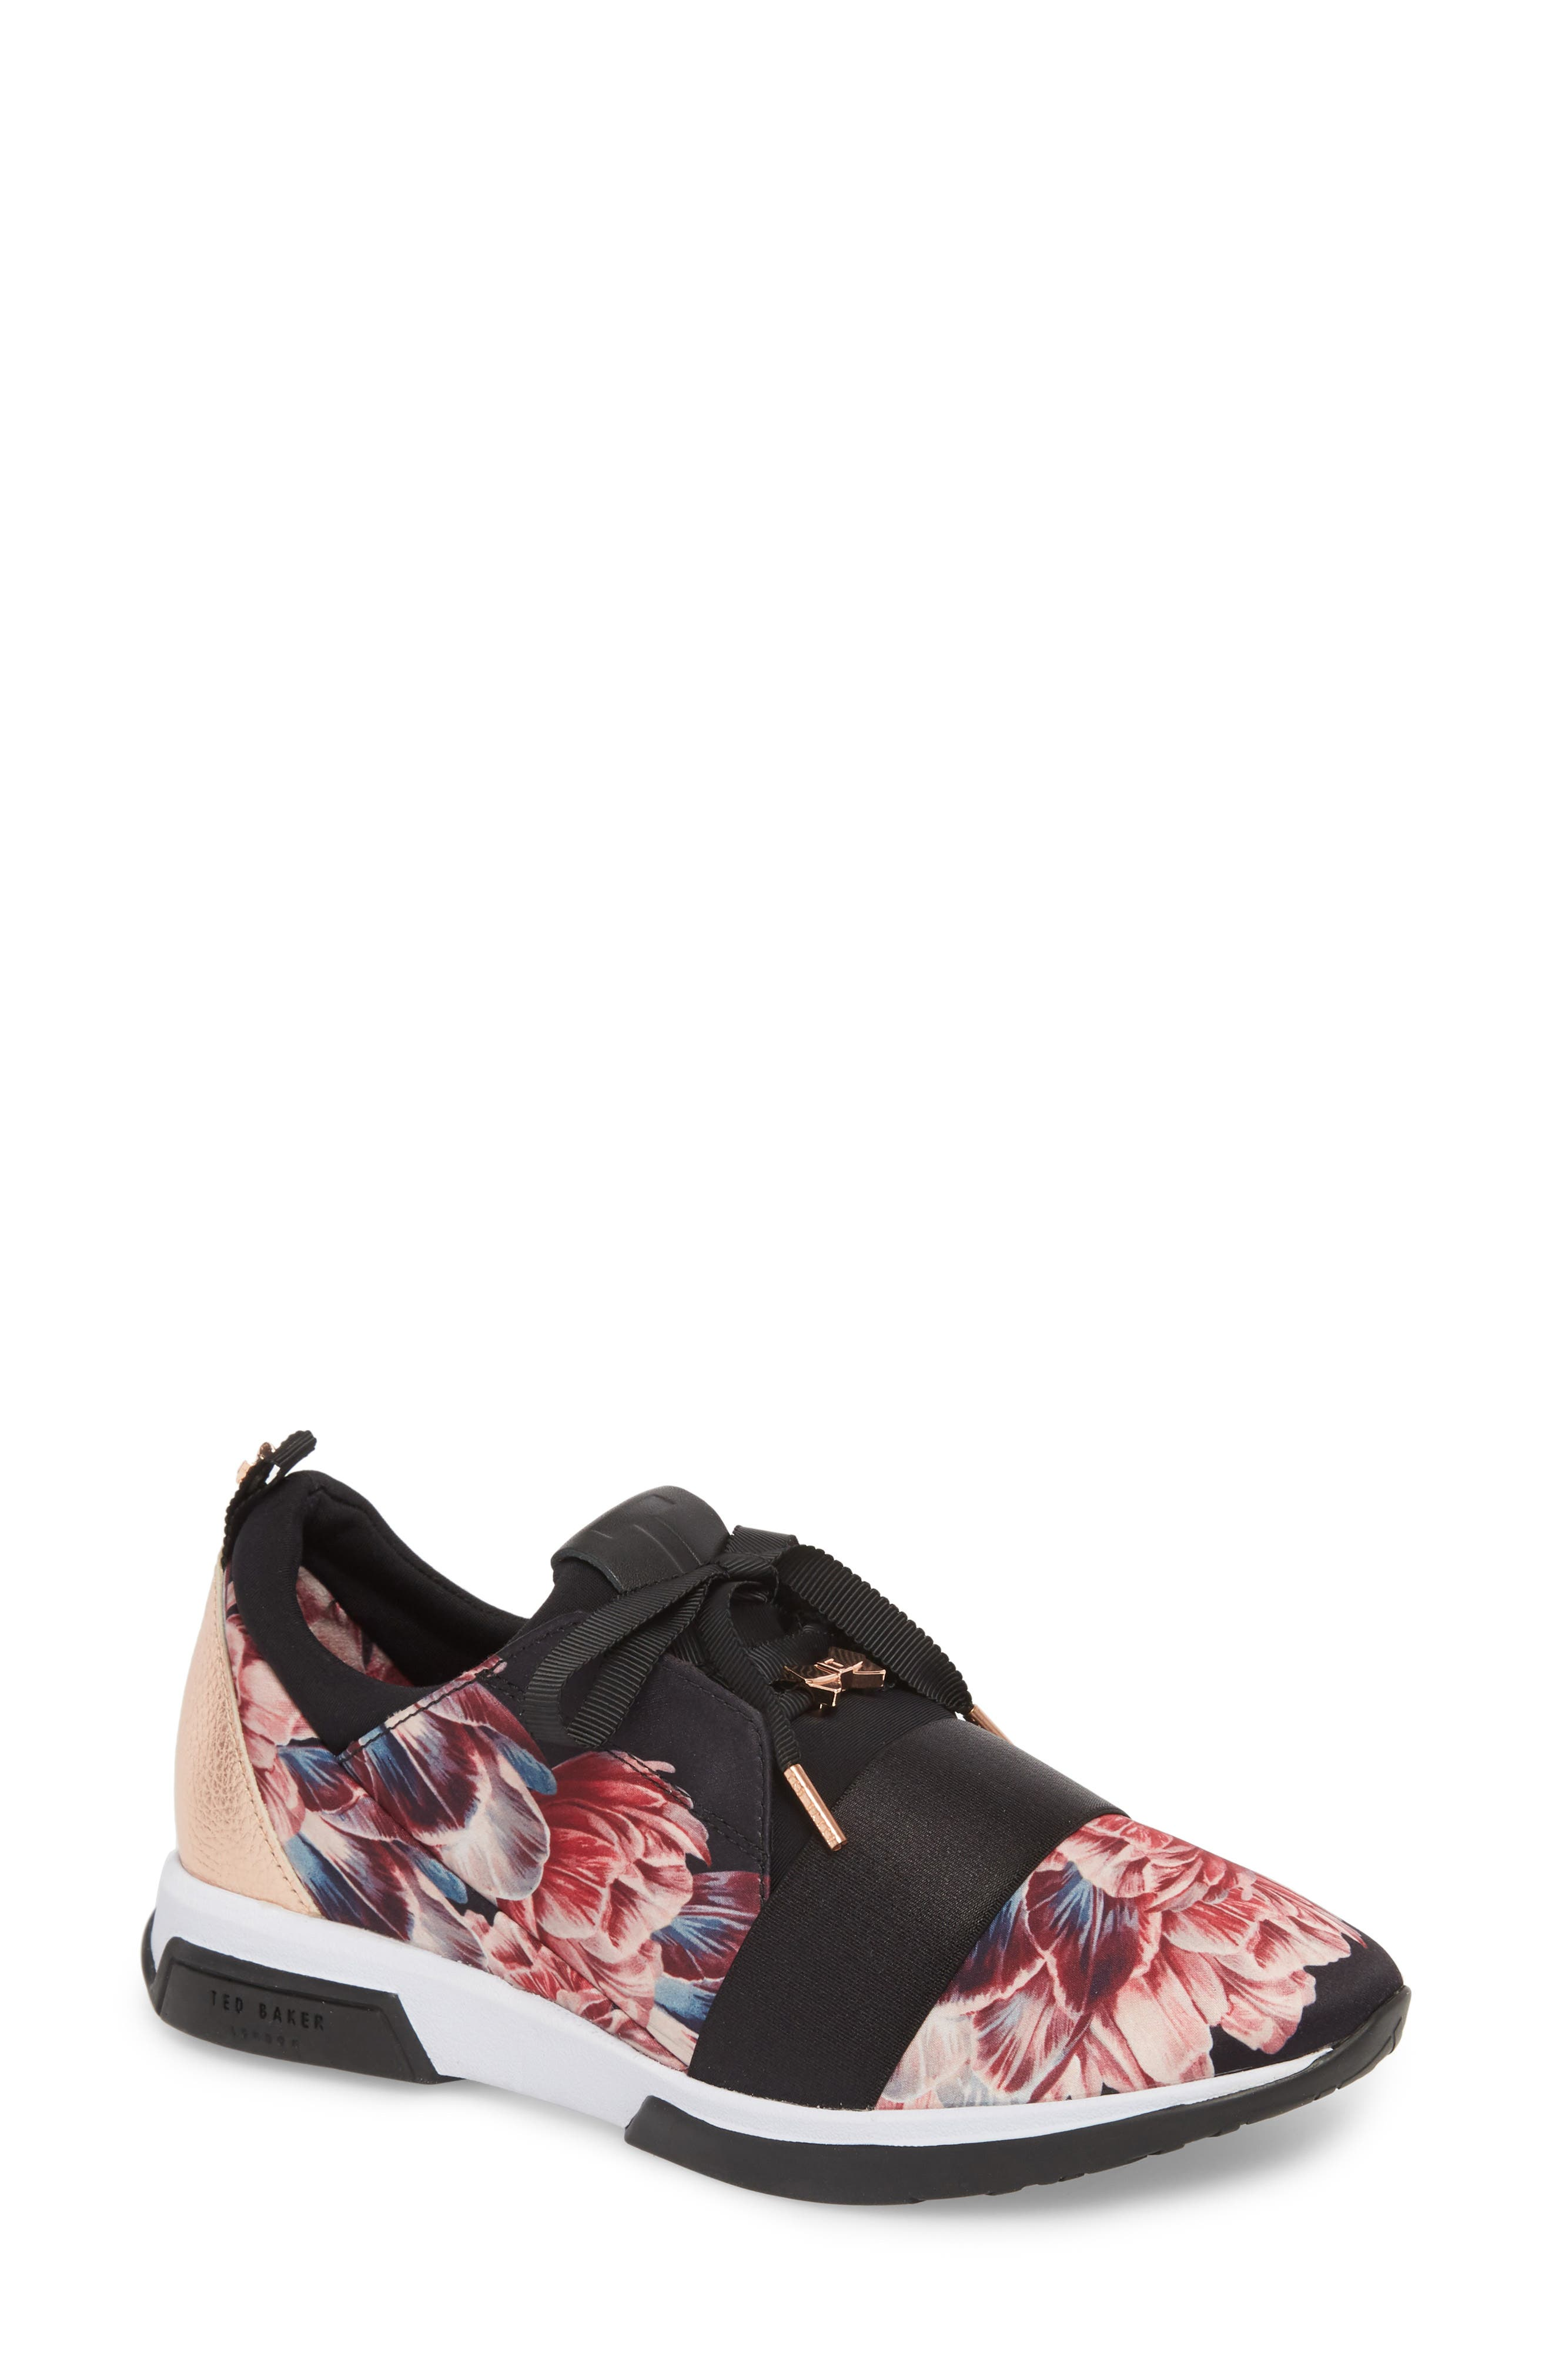 Cepap Sneaker,                             Main thumbnail 1, color,                             Tranquility Fabric